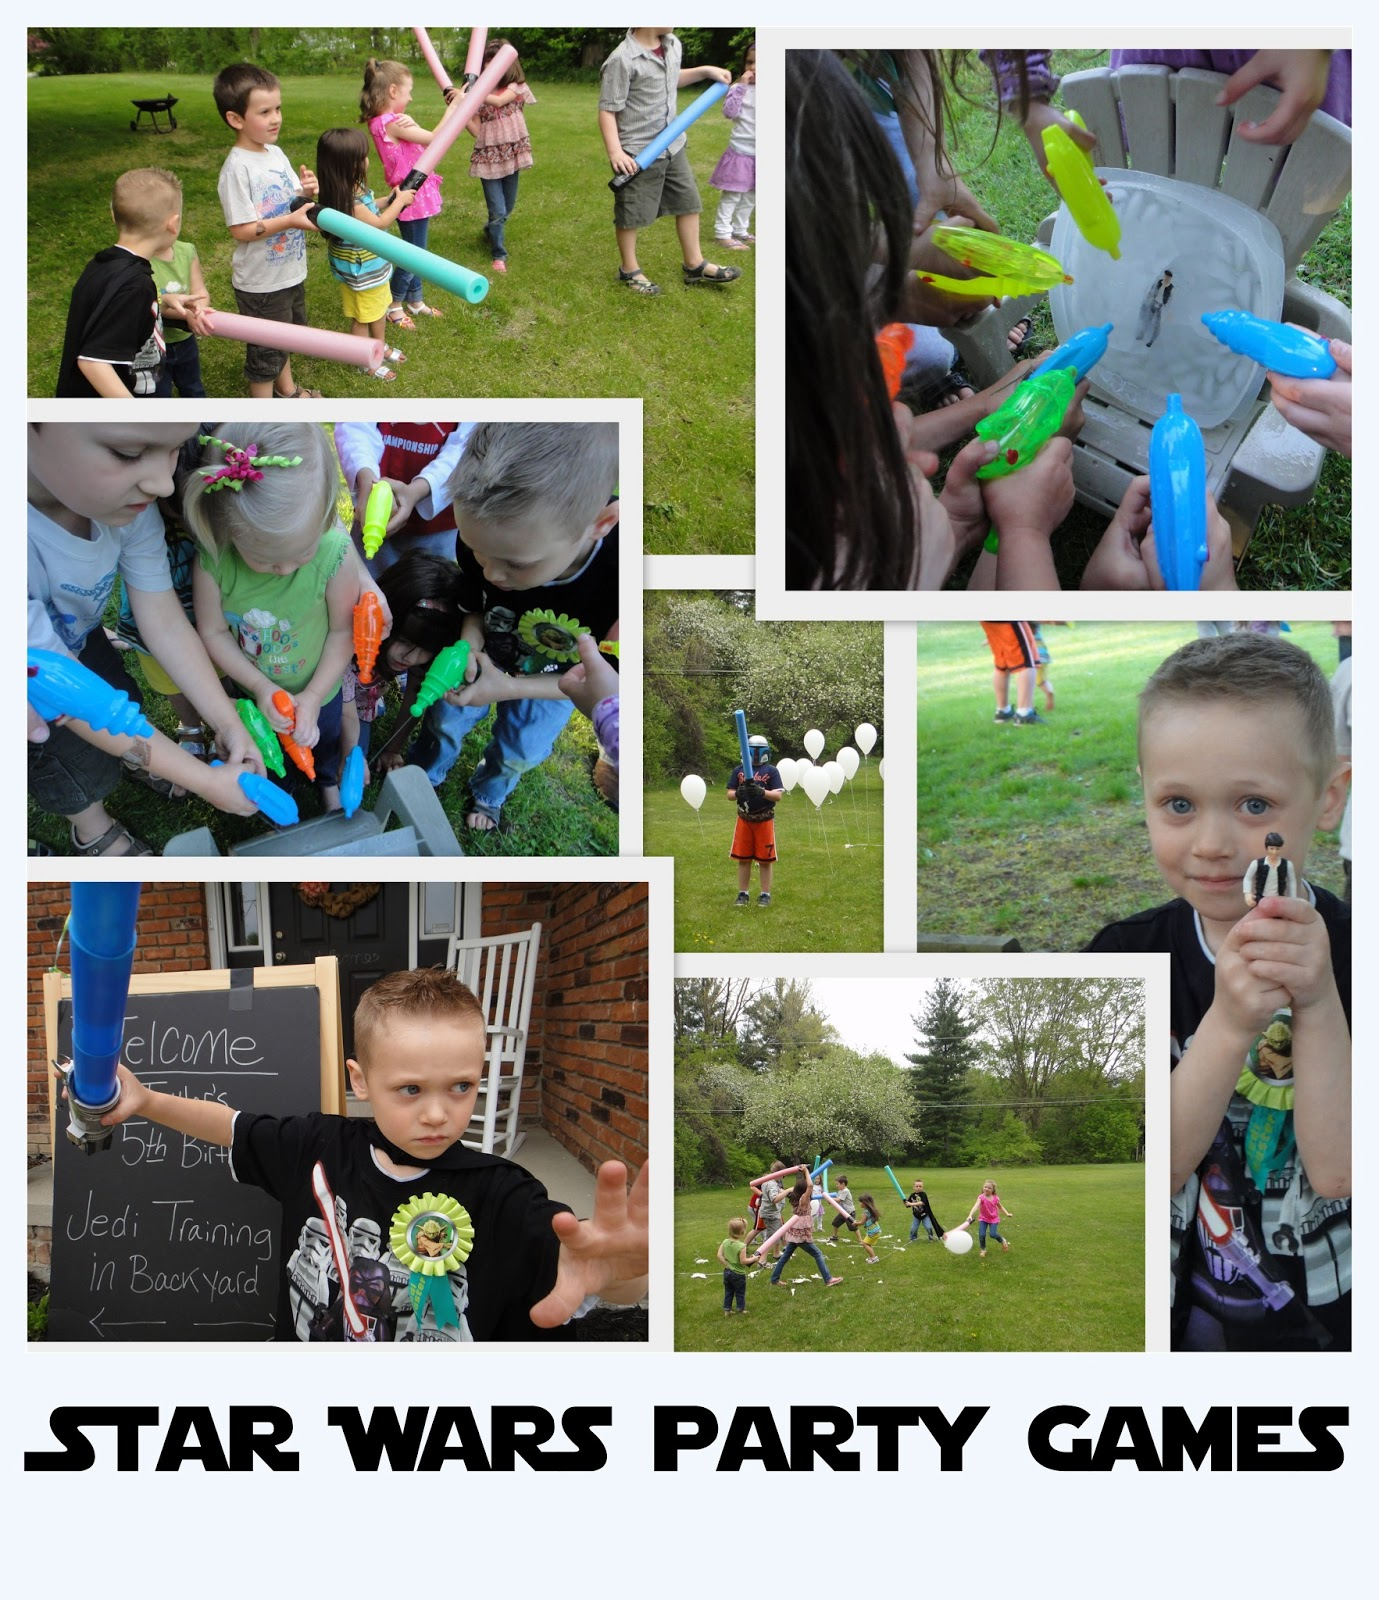 Atwp: Star Wars Themed Party Games